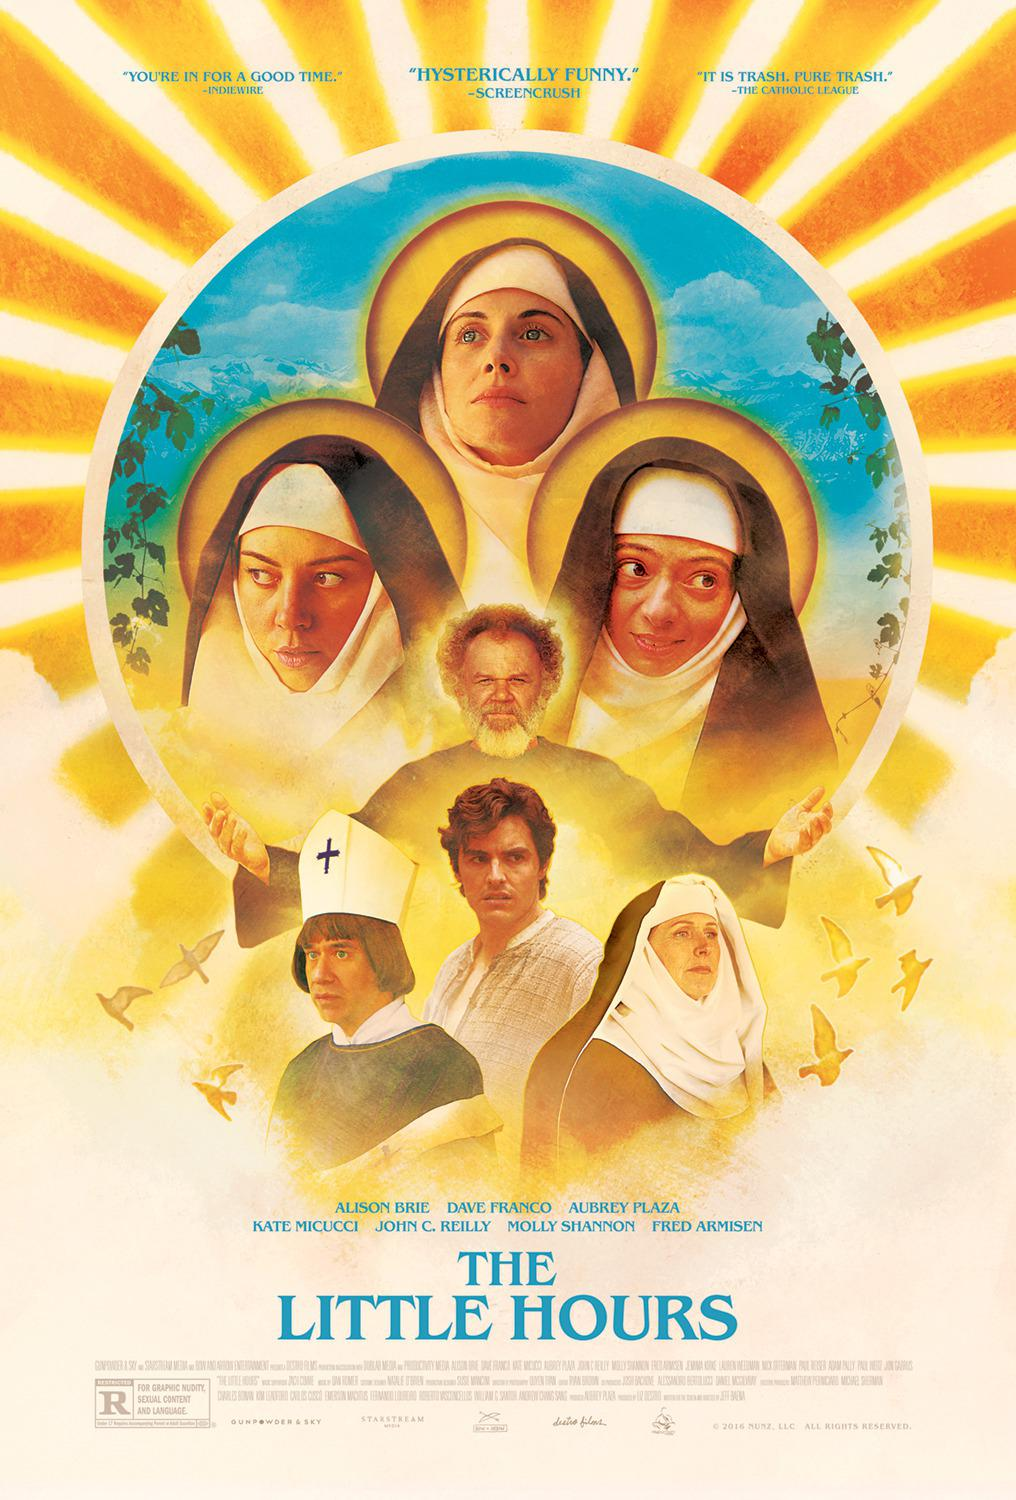 Little Hours - Obedientia - Paupertas - Alison Brie - Dave Franco - Kate Micucci - Aubrey Plaza - John C. Reilly - Molly Shannon - Fred Armisen - film by Jeff Baena - poster